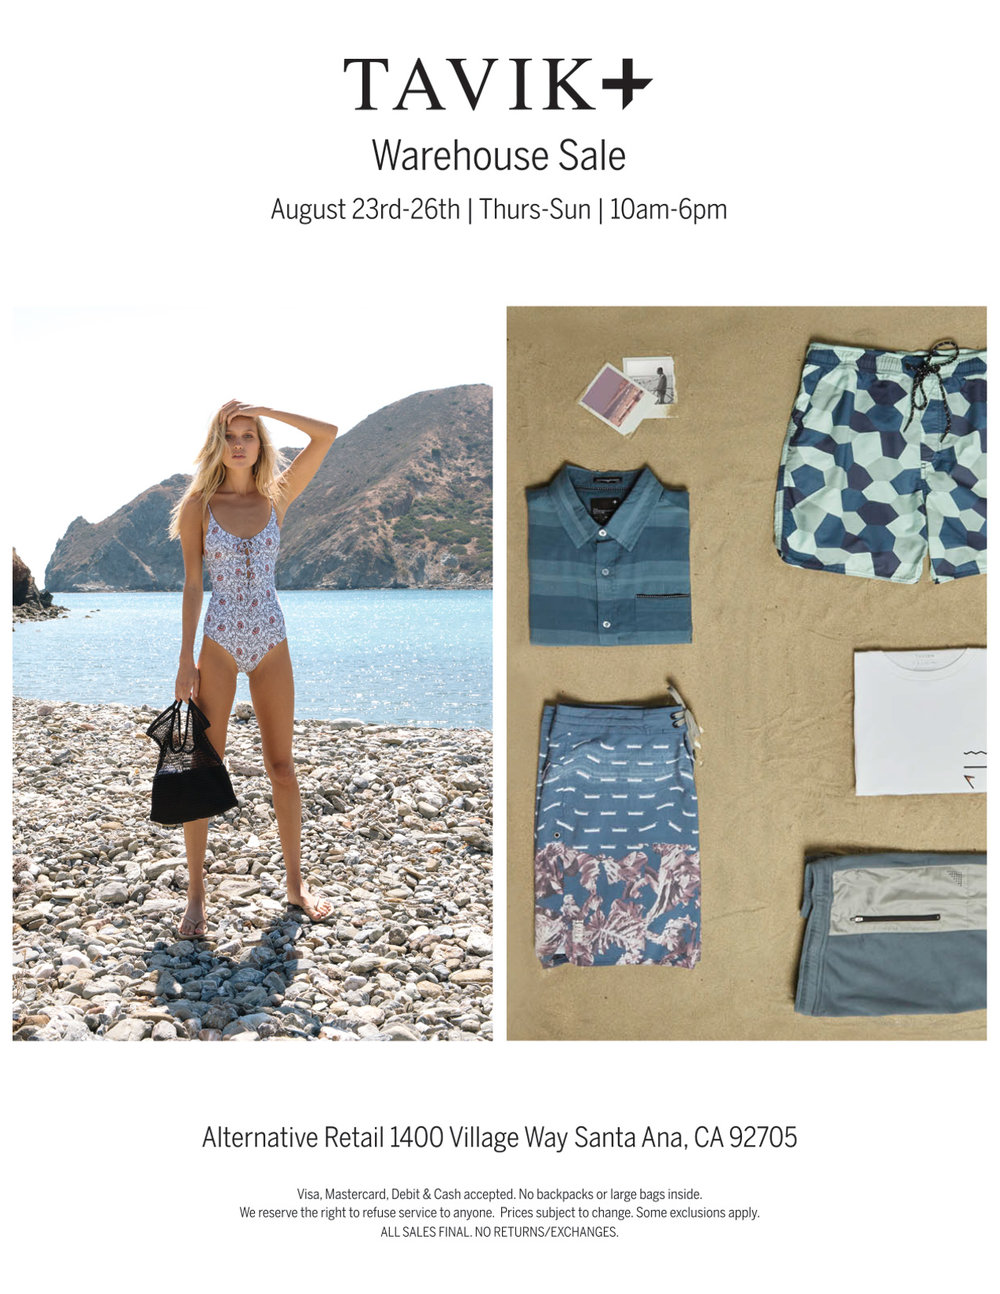 Tavik-WarehouseSale-flyer-offical-Aug2018.jpg